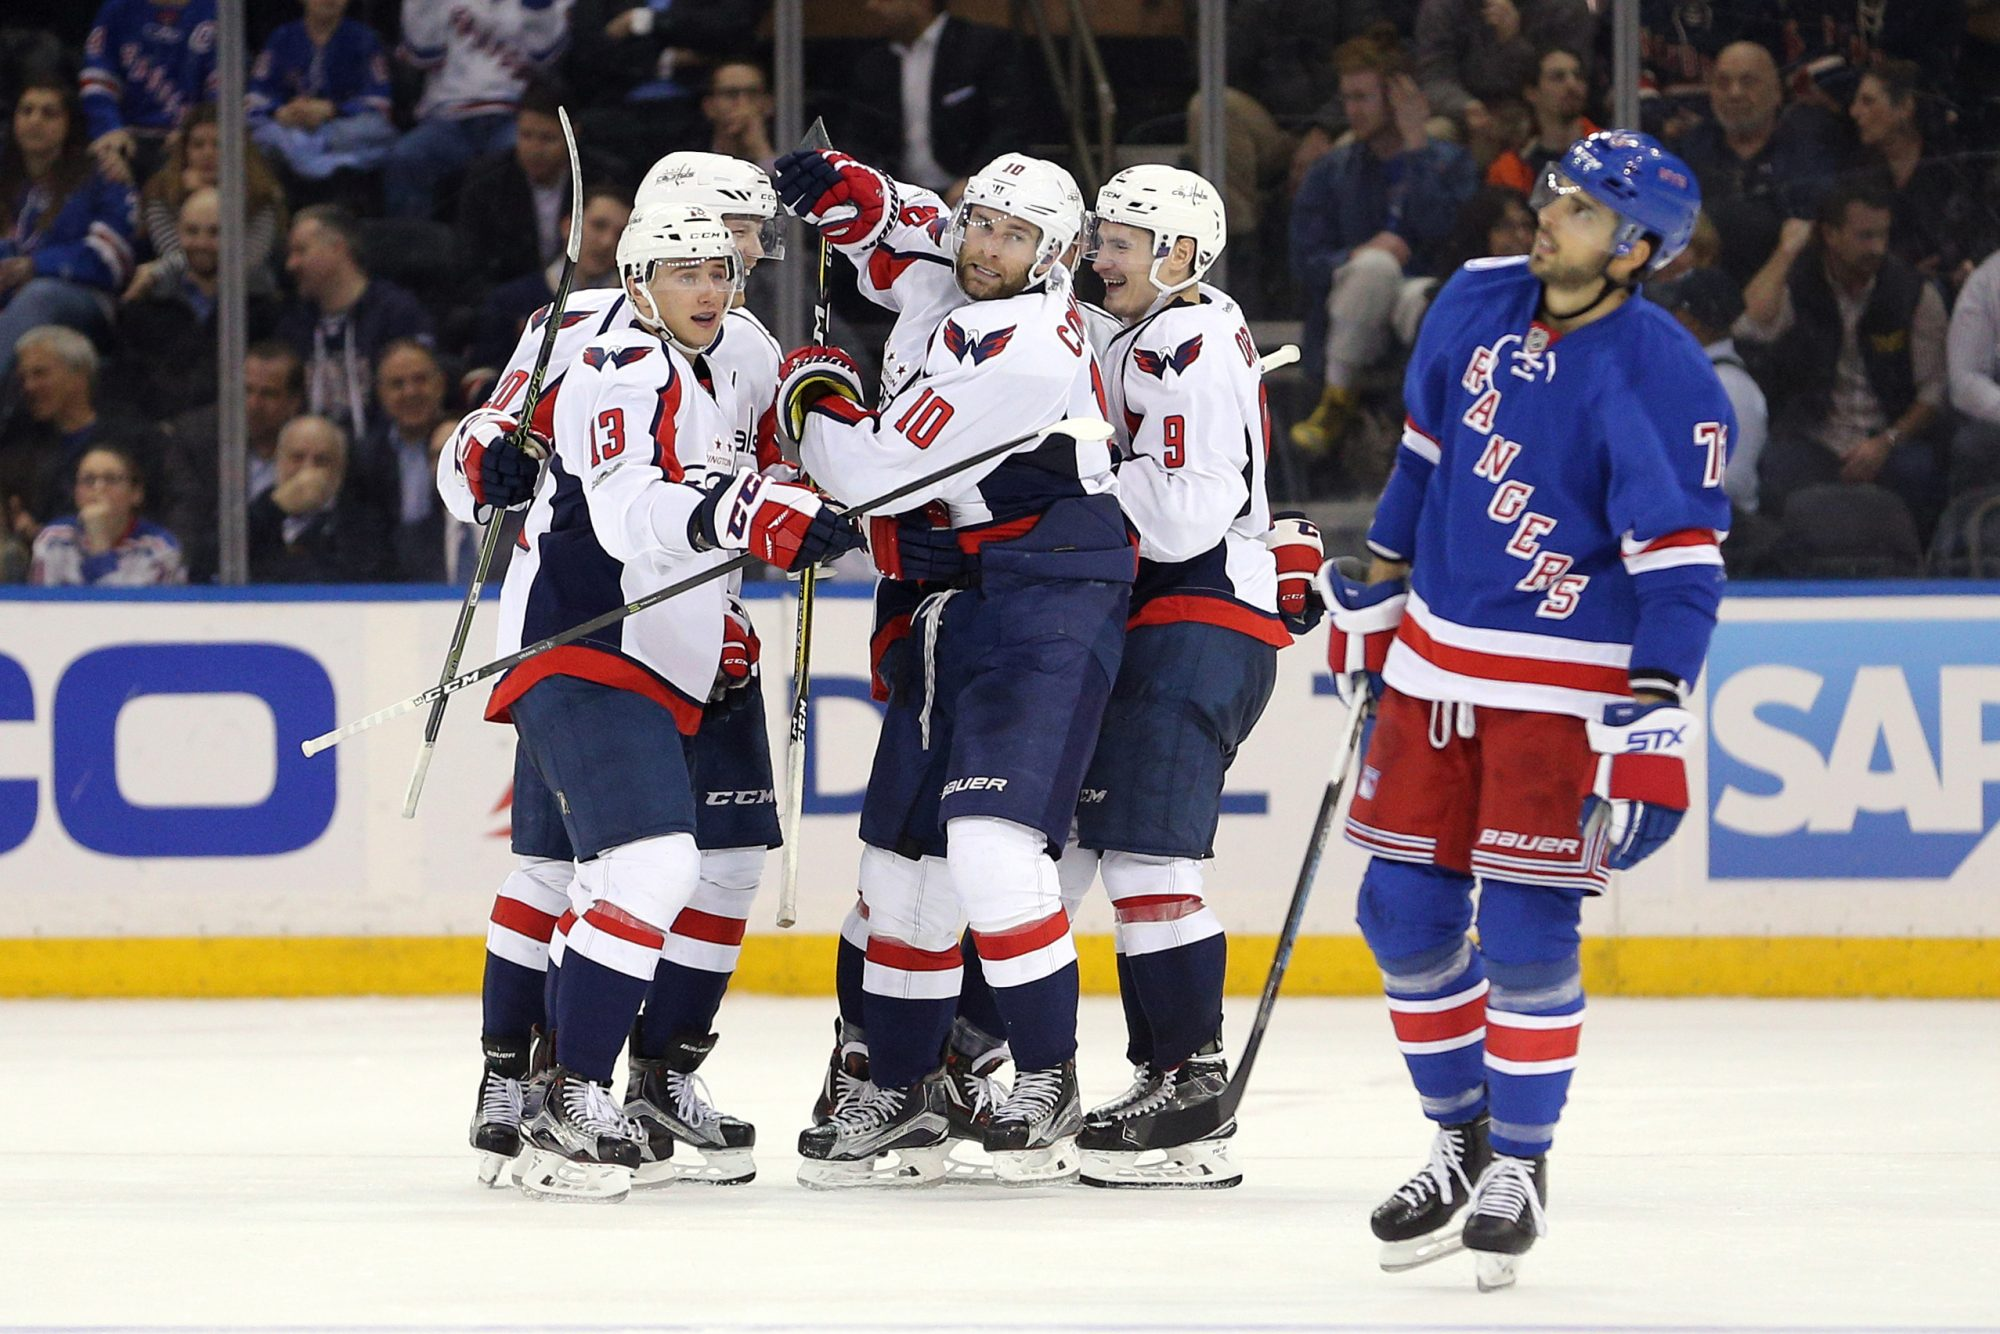 New York Rangers thoroughly outclassed by Washington Capitals (Highlights)